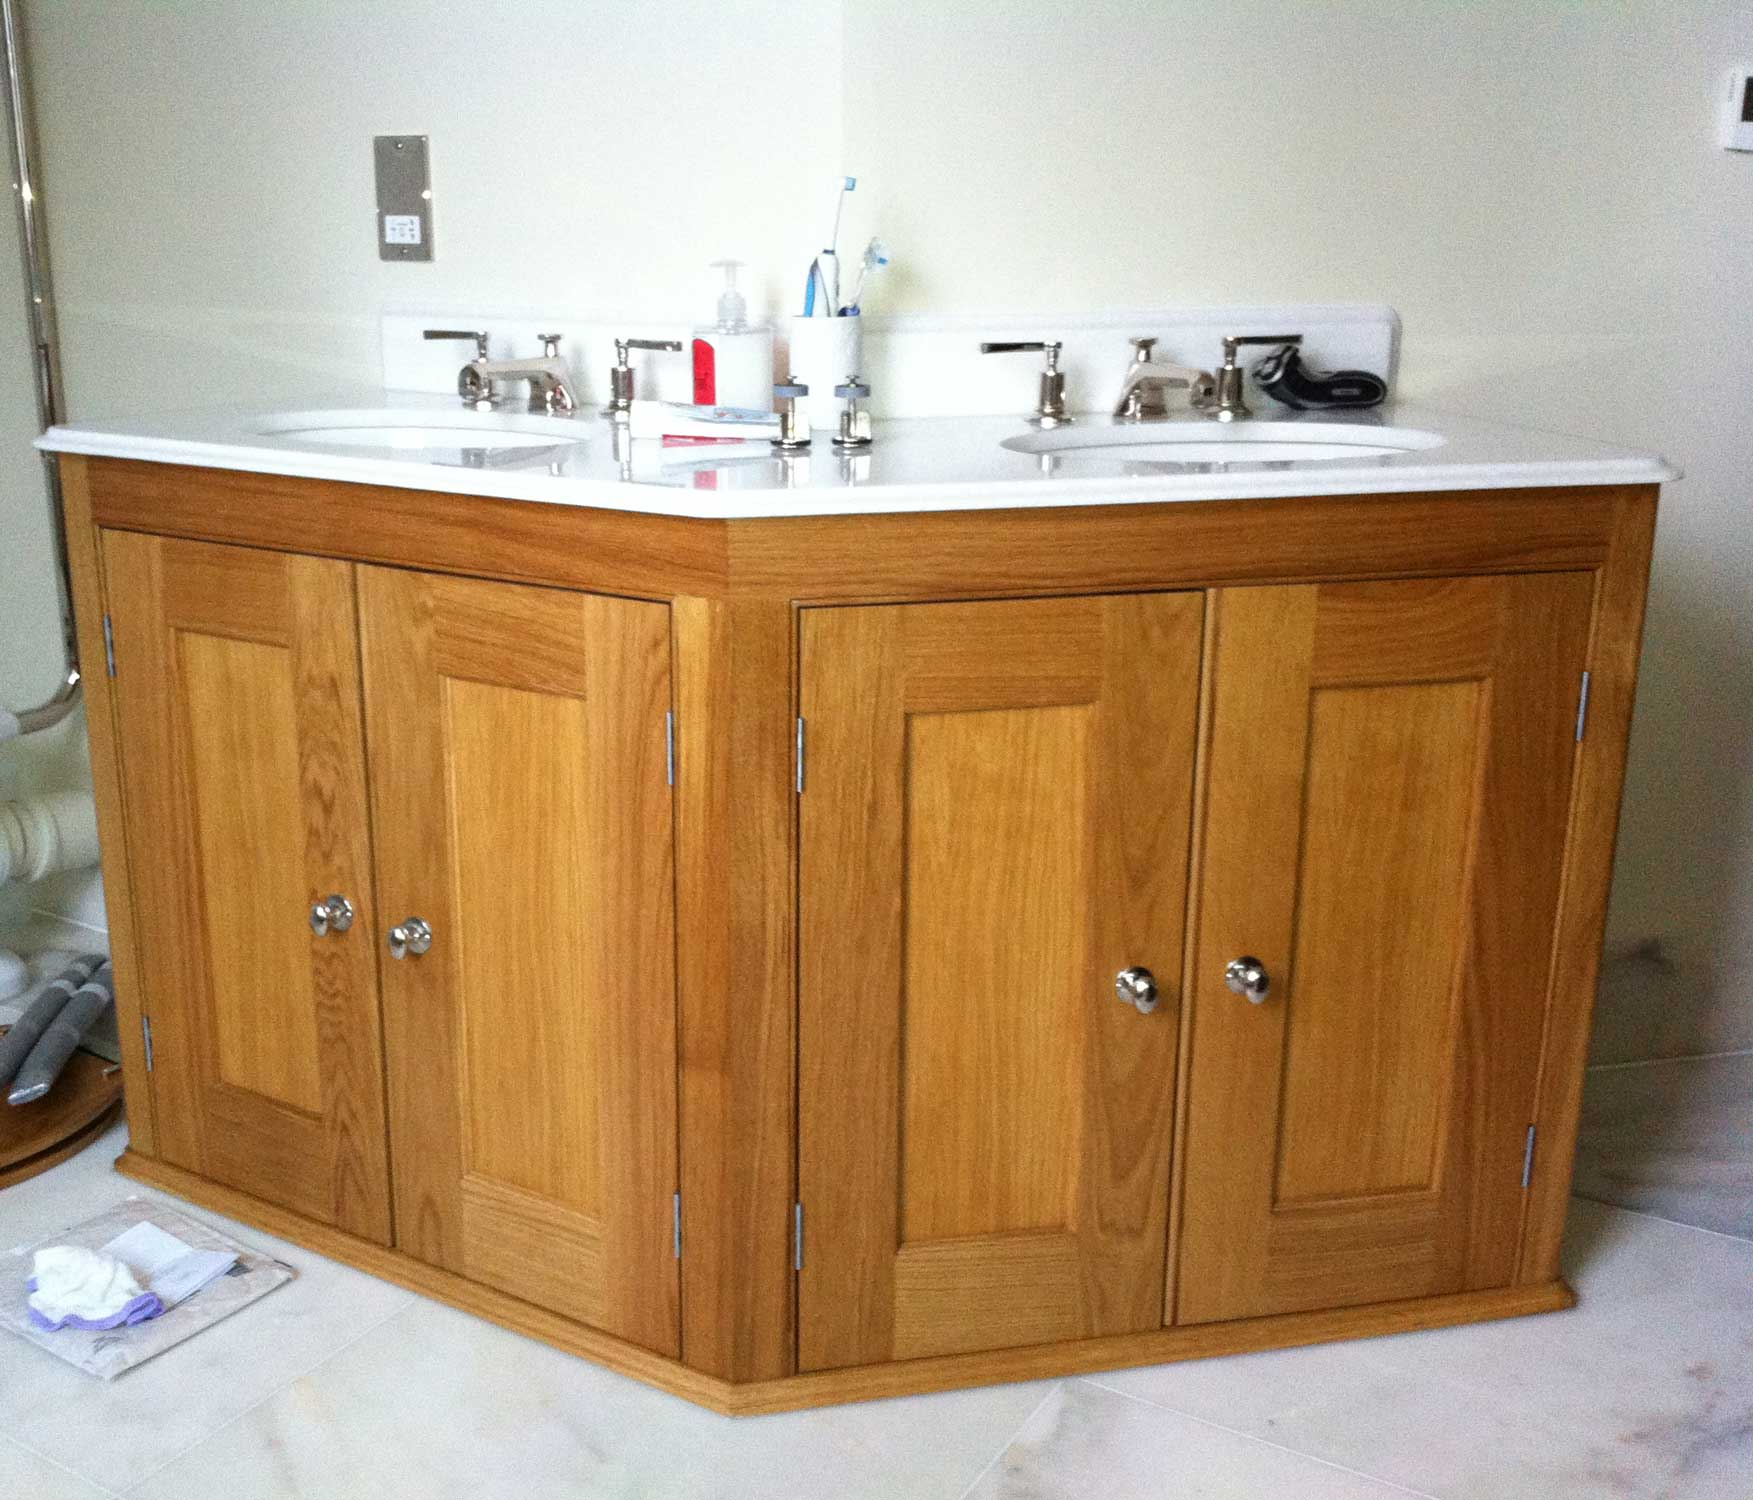 wooden cabinet with sink on top